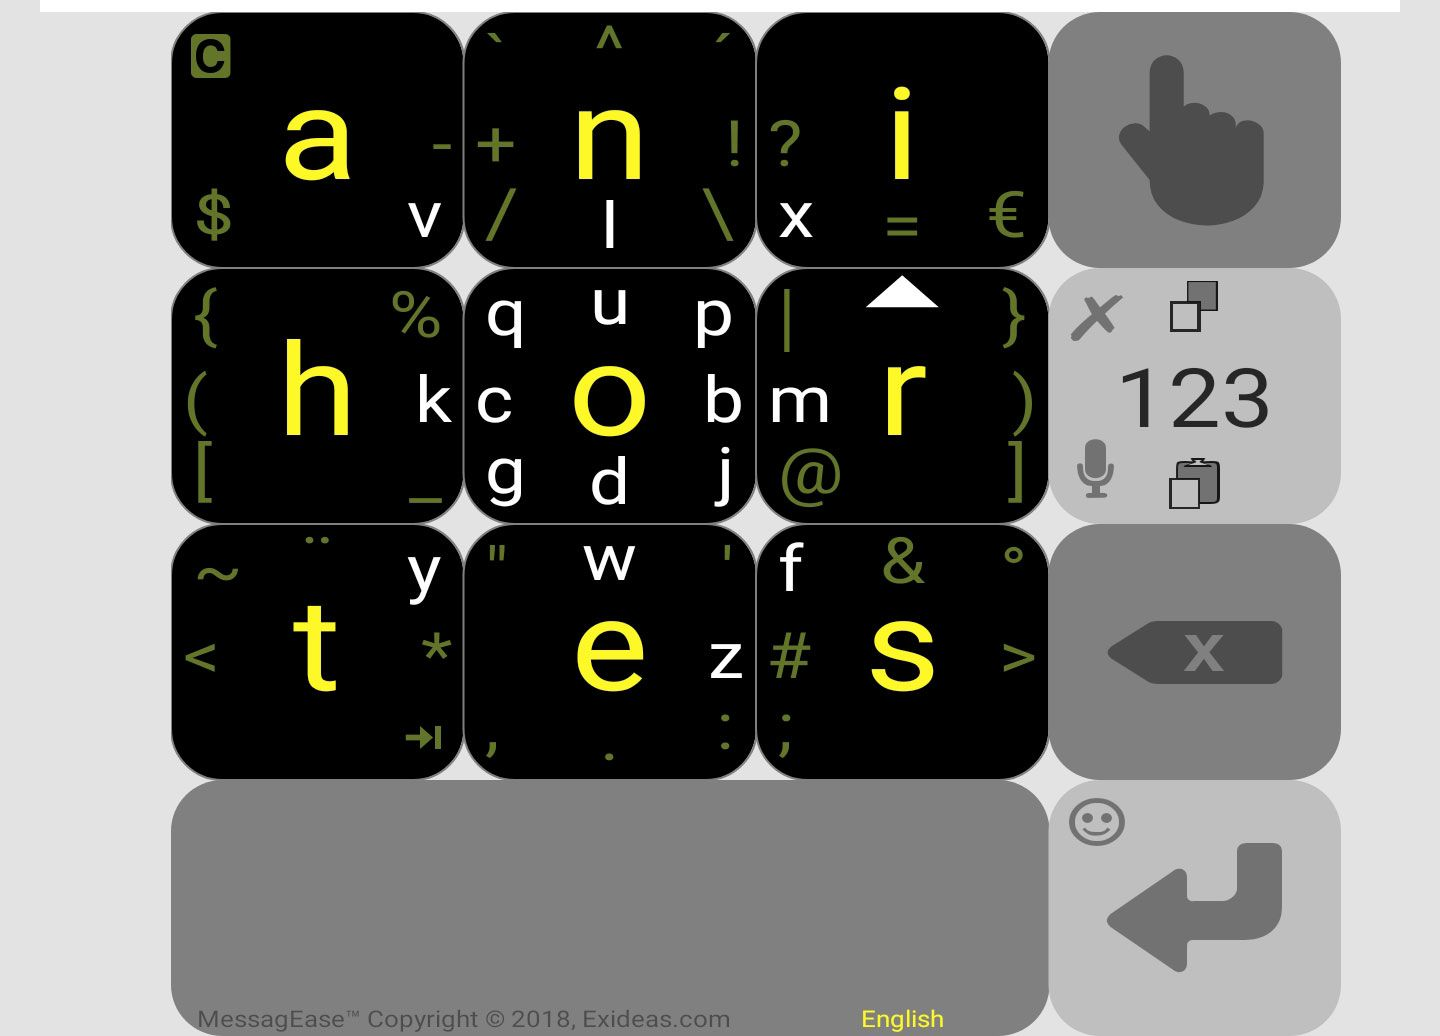 MessagEase Keyboard – great for one-handed